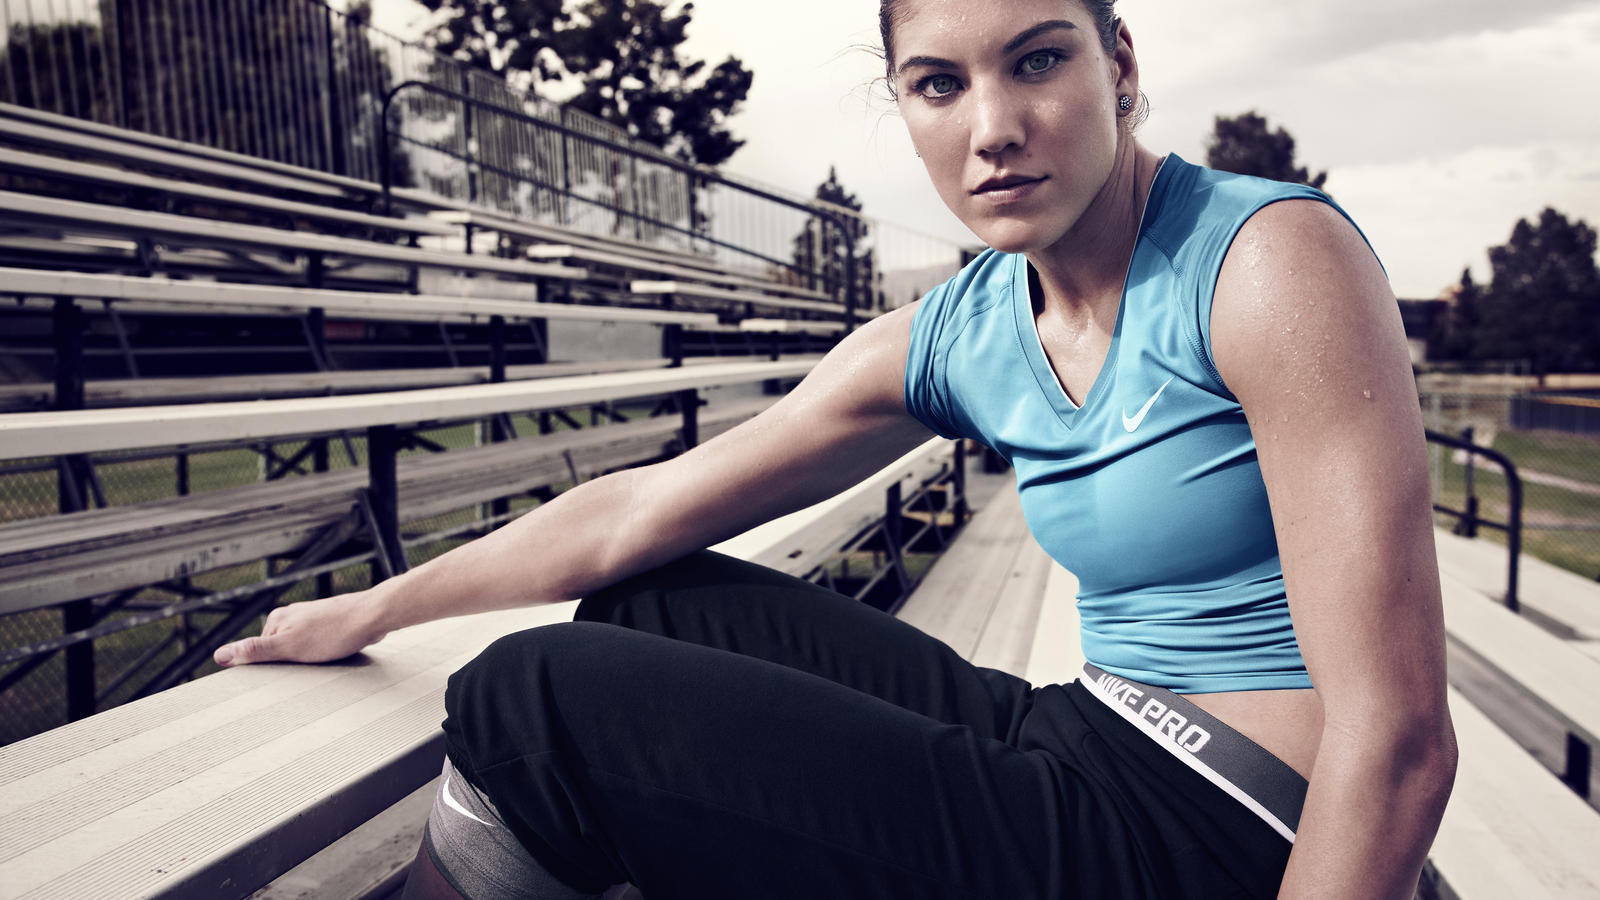 Sp12_WT_HopeSolo_NikePro_02